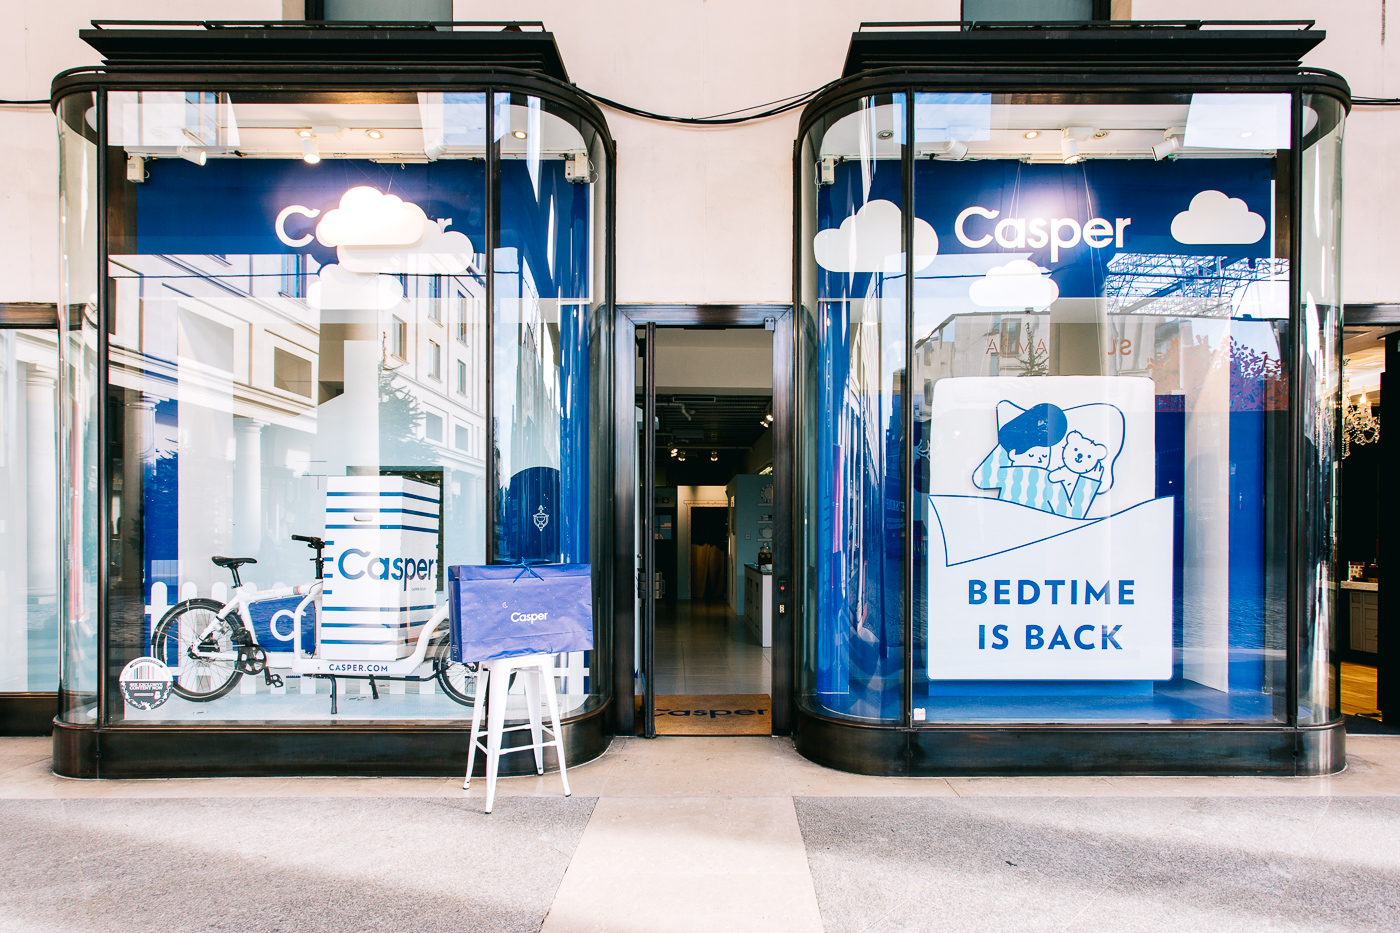 Casper pop-up